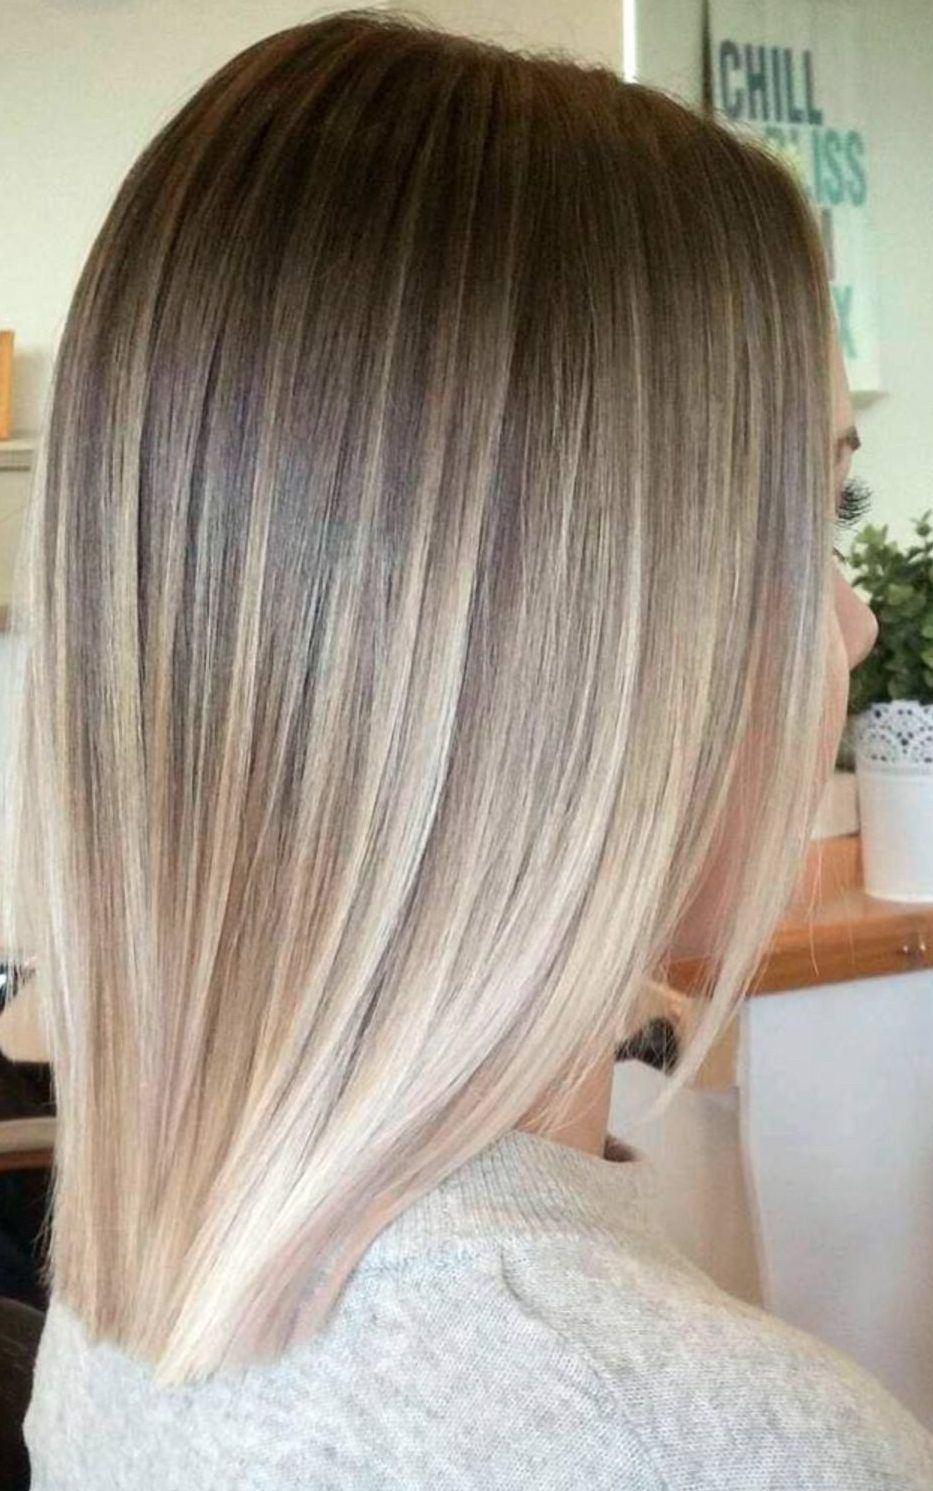 50 Blonde Hair Color Ideas For Short Hair Blonde Inspirations For